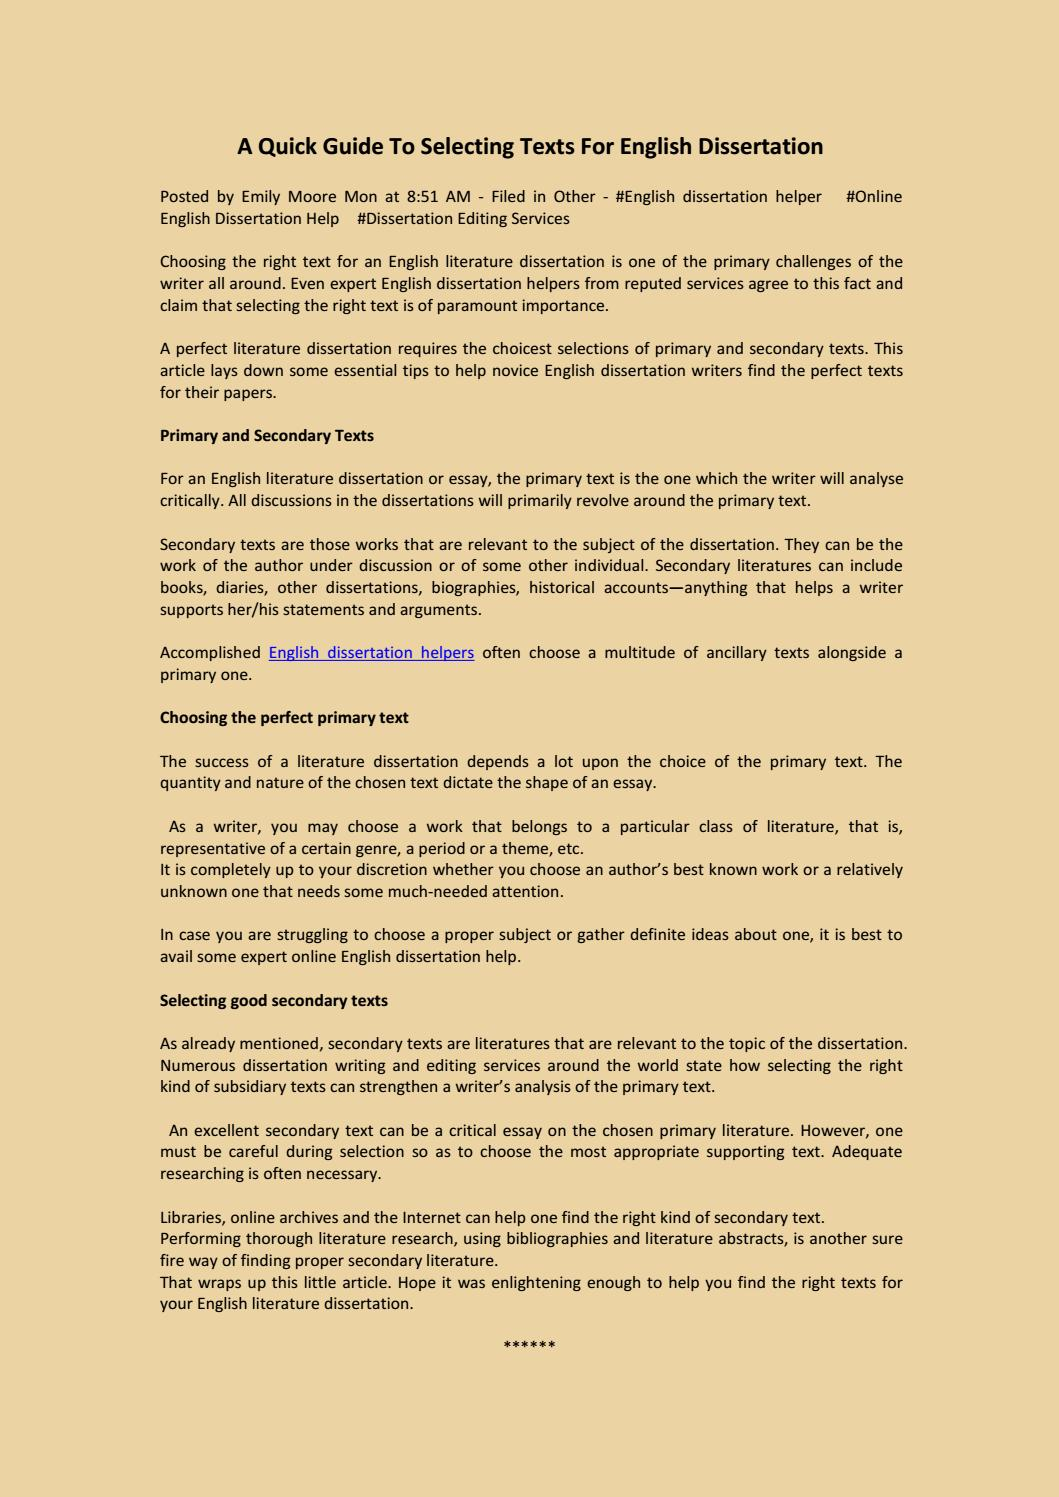 Help writing world literature dissertation be punctual and responsible essay